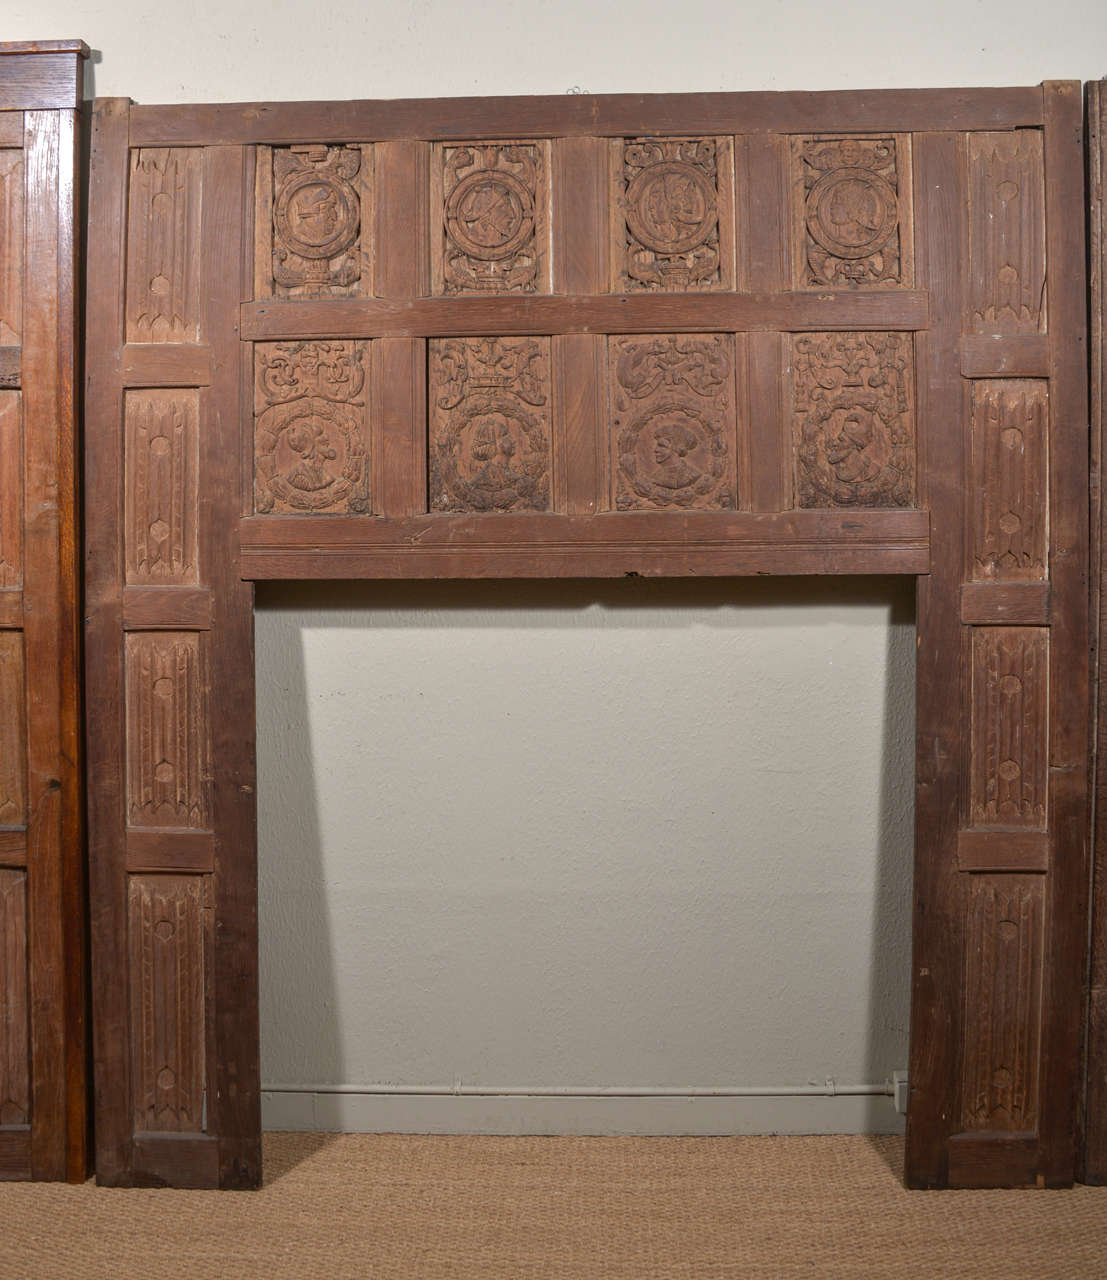 Set of Eleven 16th Century Carved Linenfold Wood Panels 2